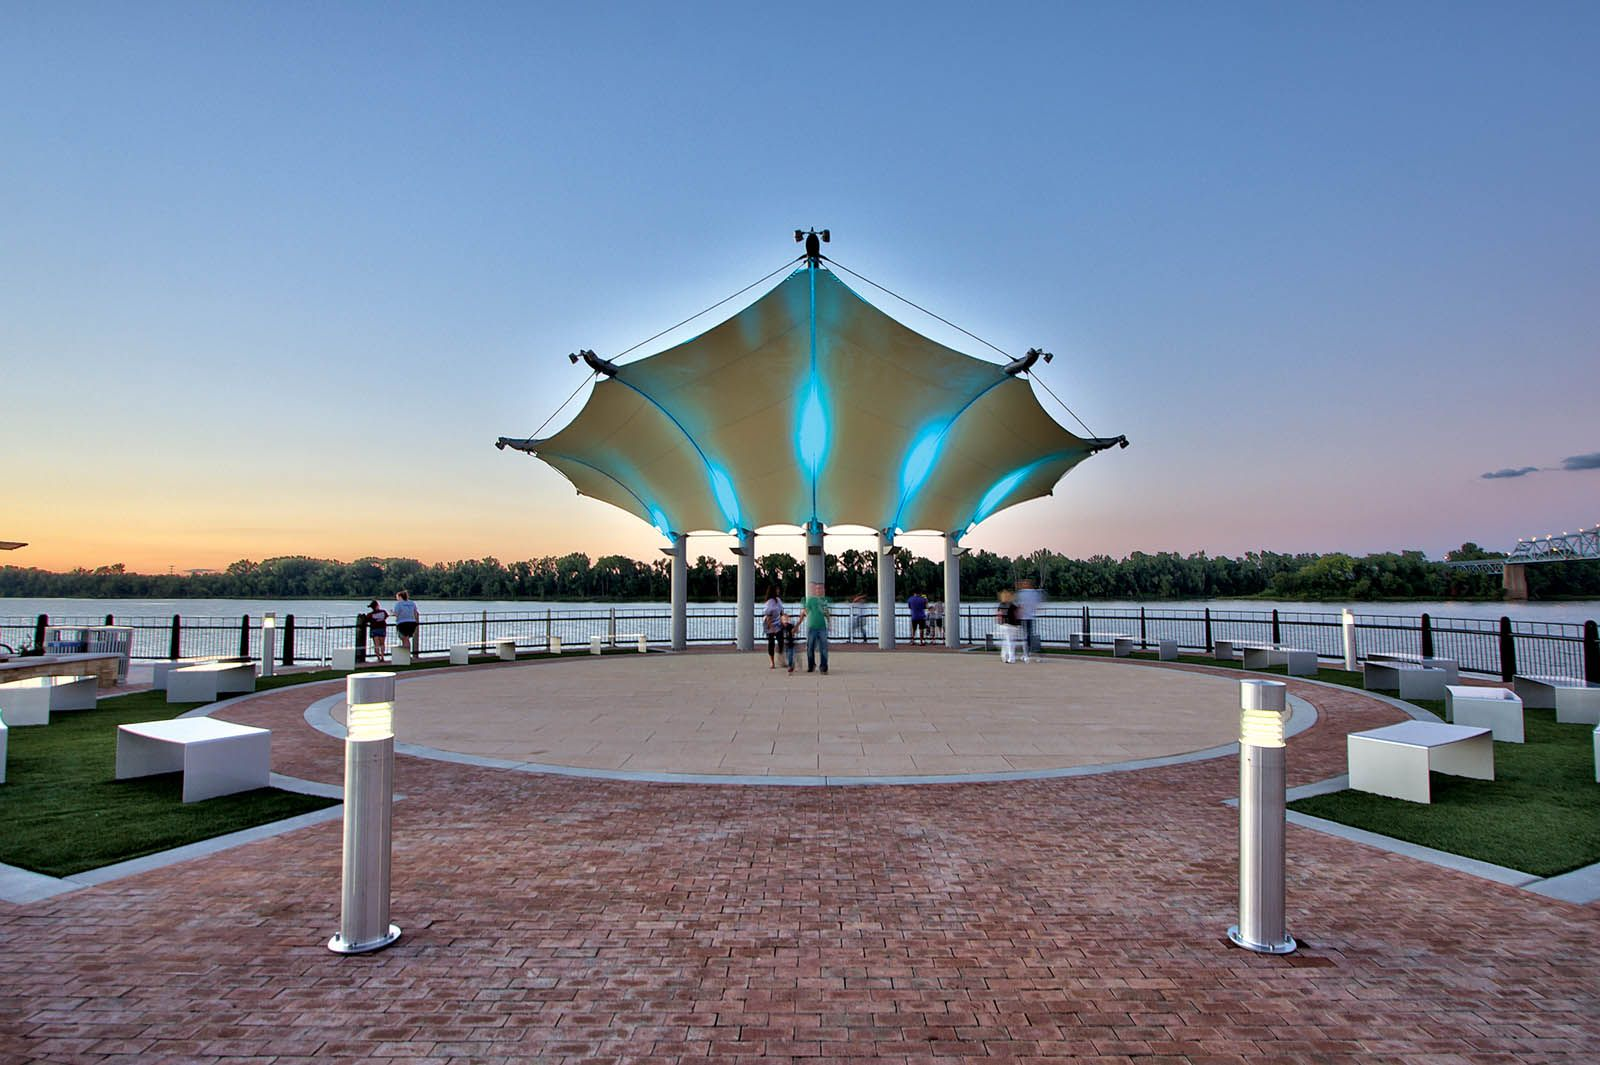 On the water: redevelopment in fabric. Photo: Fabric Architecture Ltd.